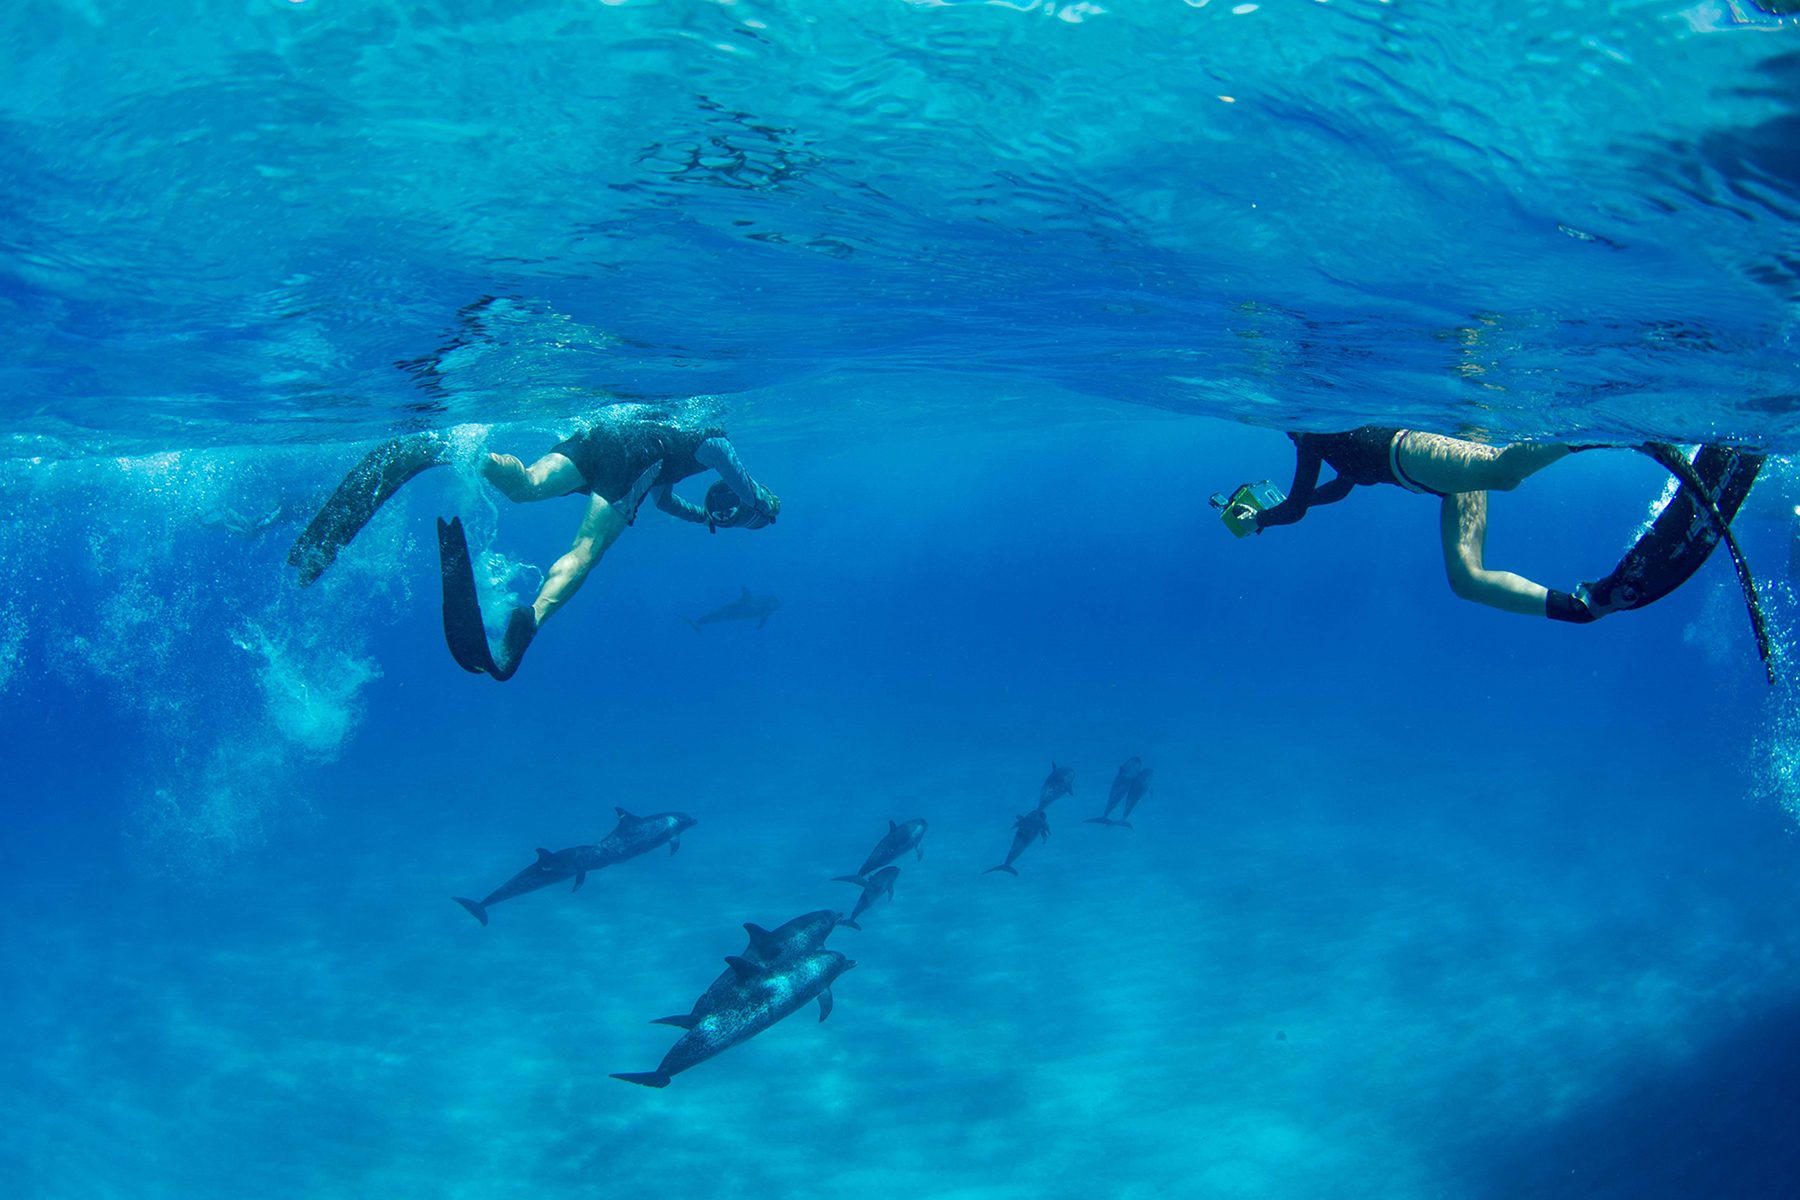 two researchers in scuba gear take pictures of a dolphin pod underwater